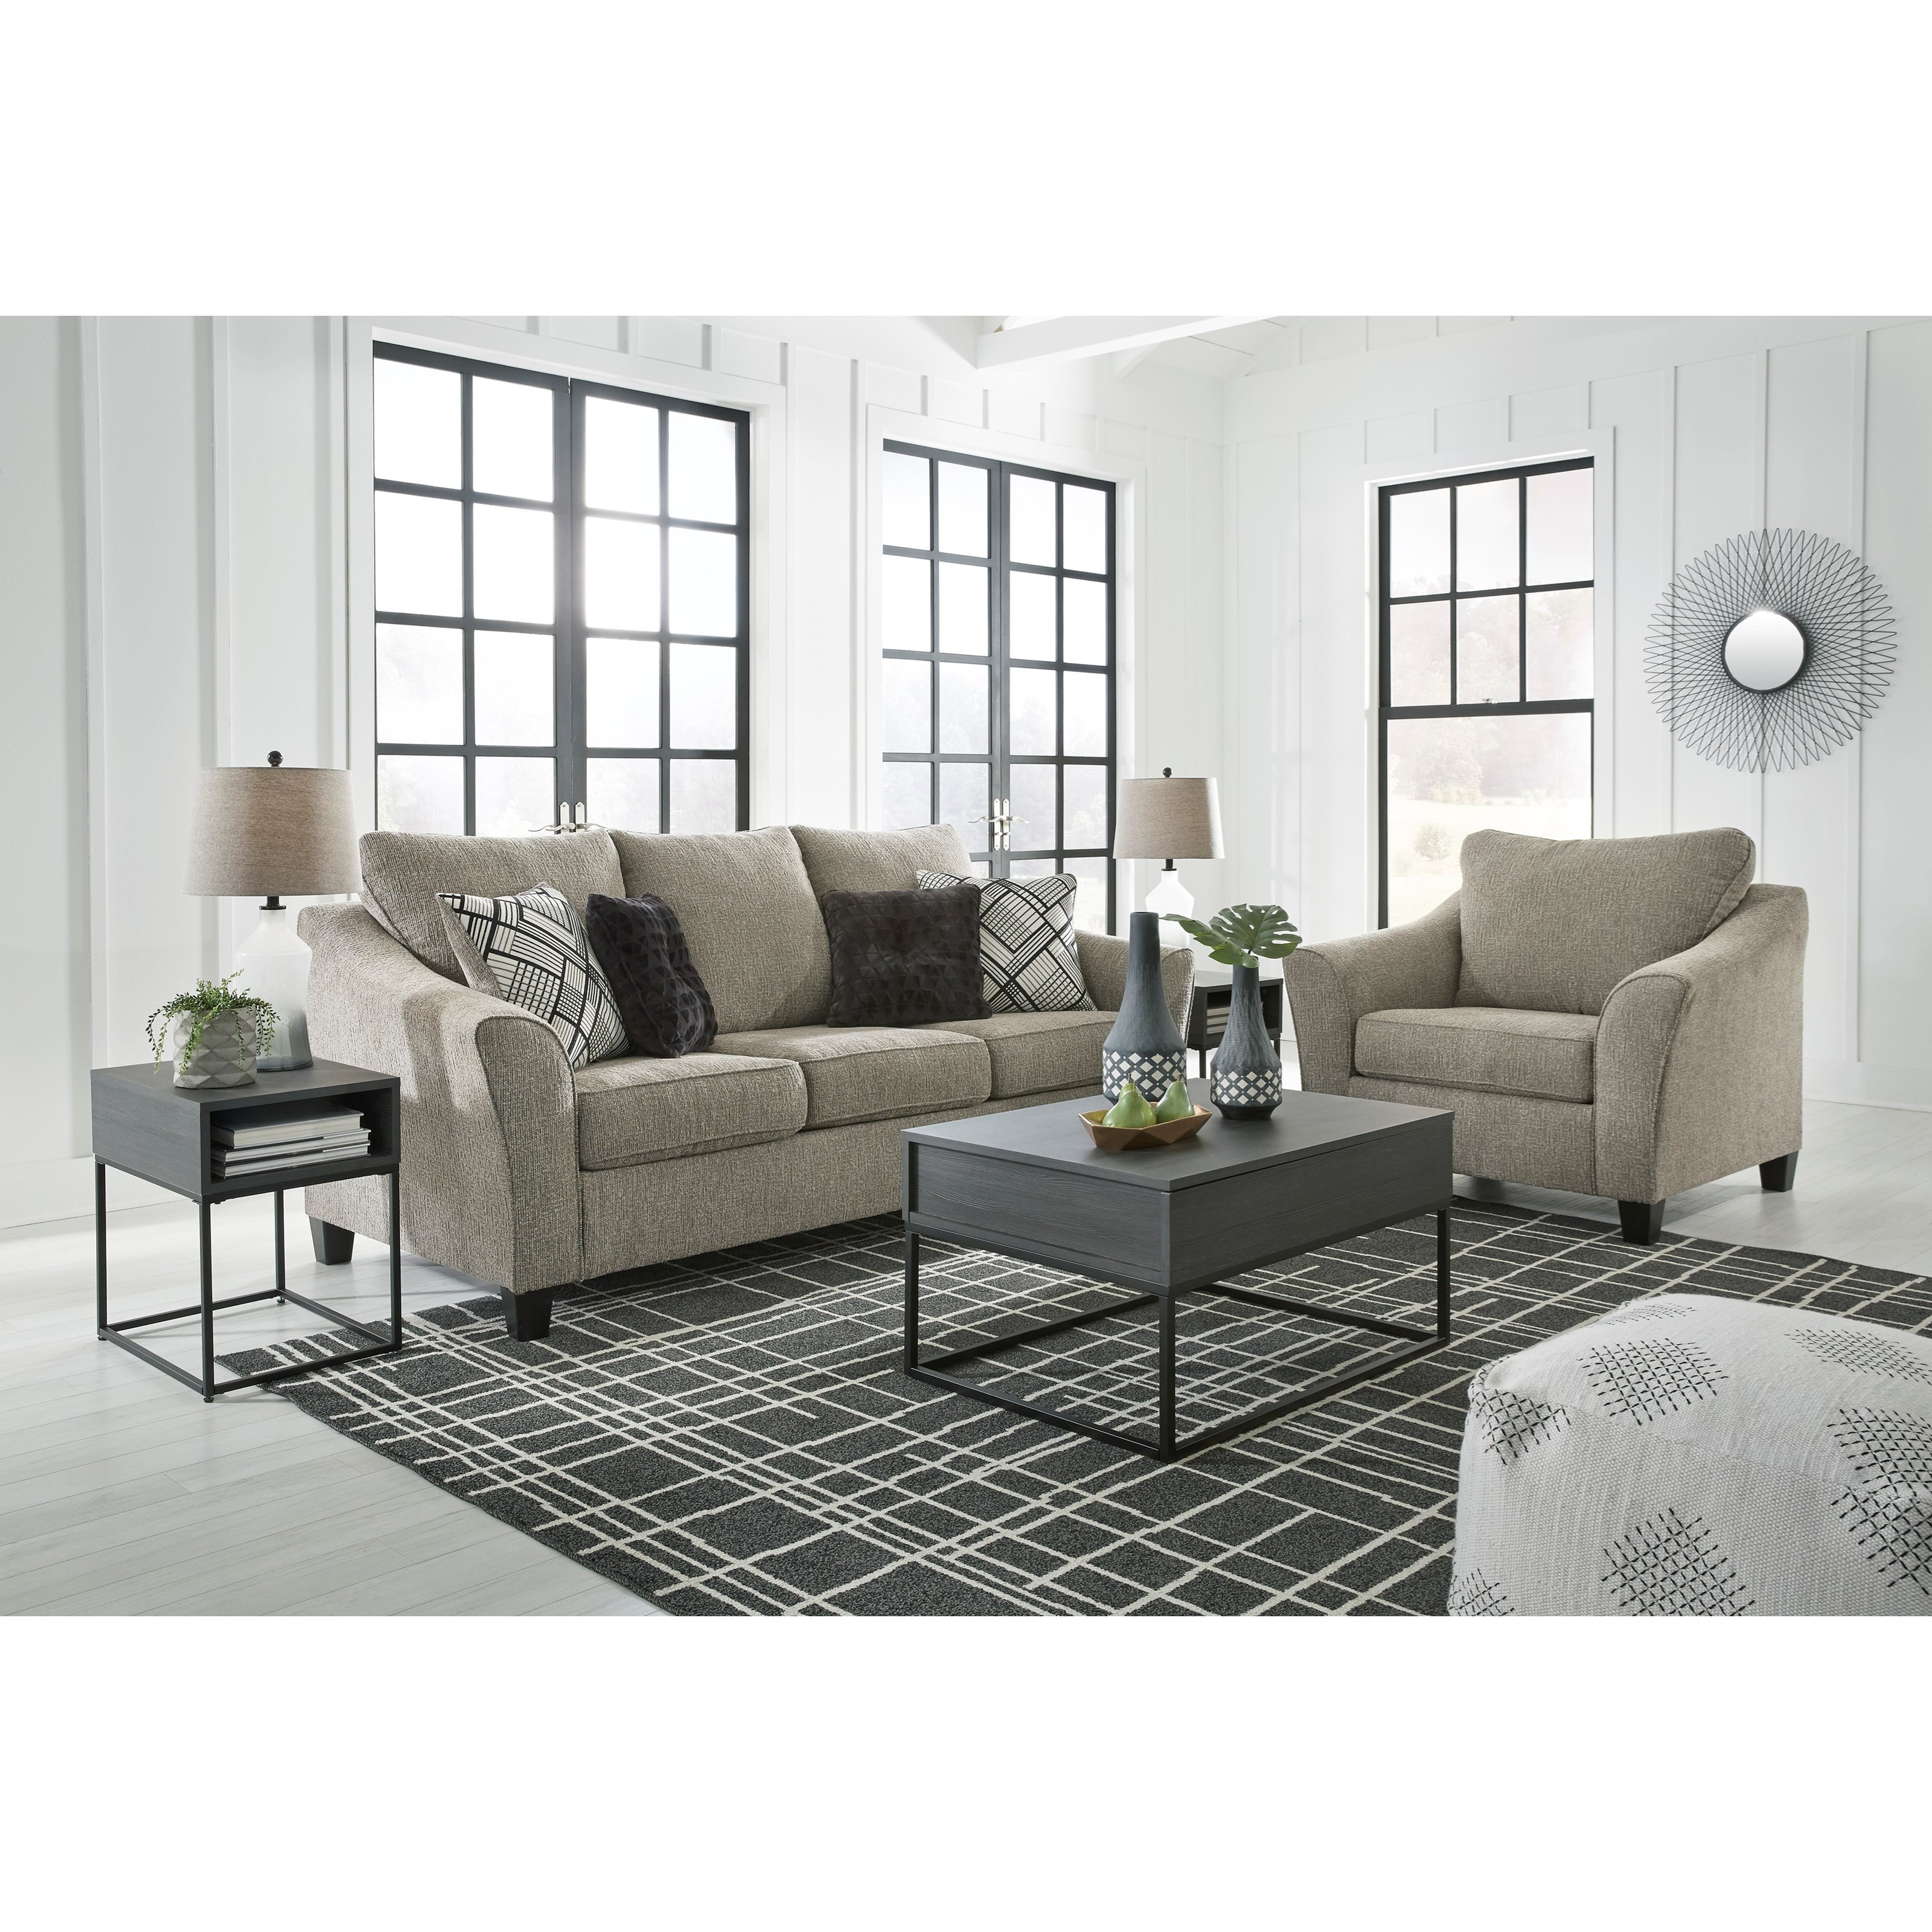 Barnesley Living Room Group by Benchcraft at Furniture Superstore - Rochester, MN